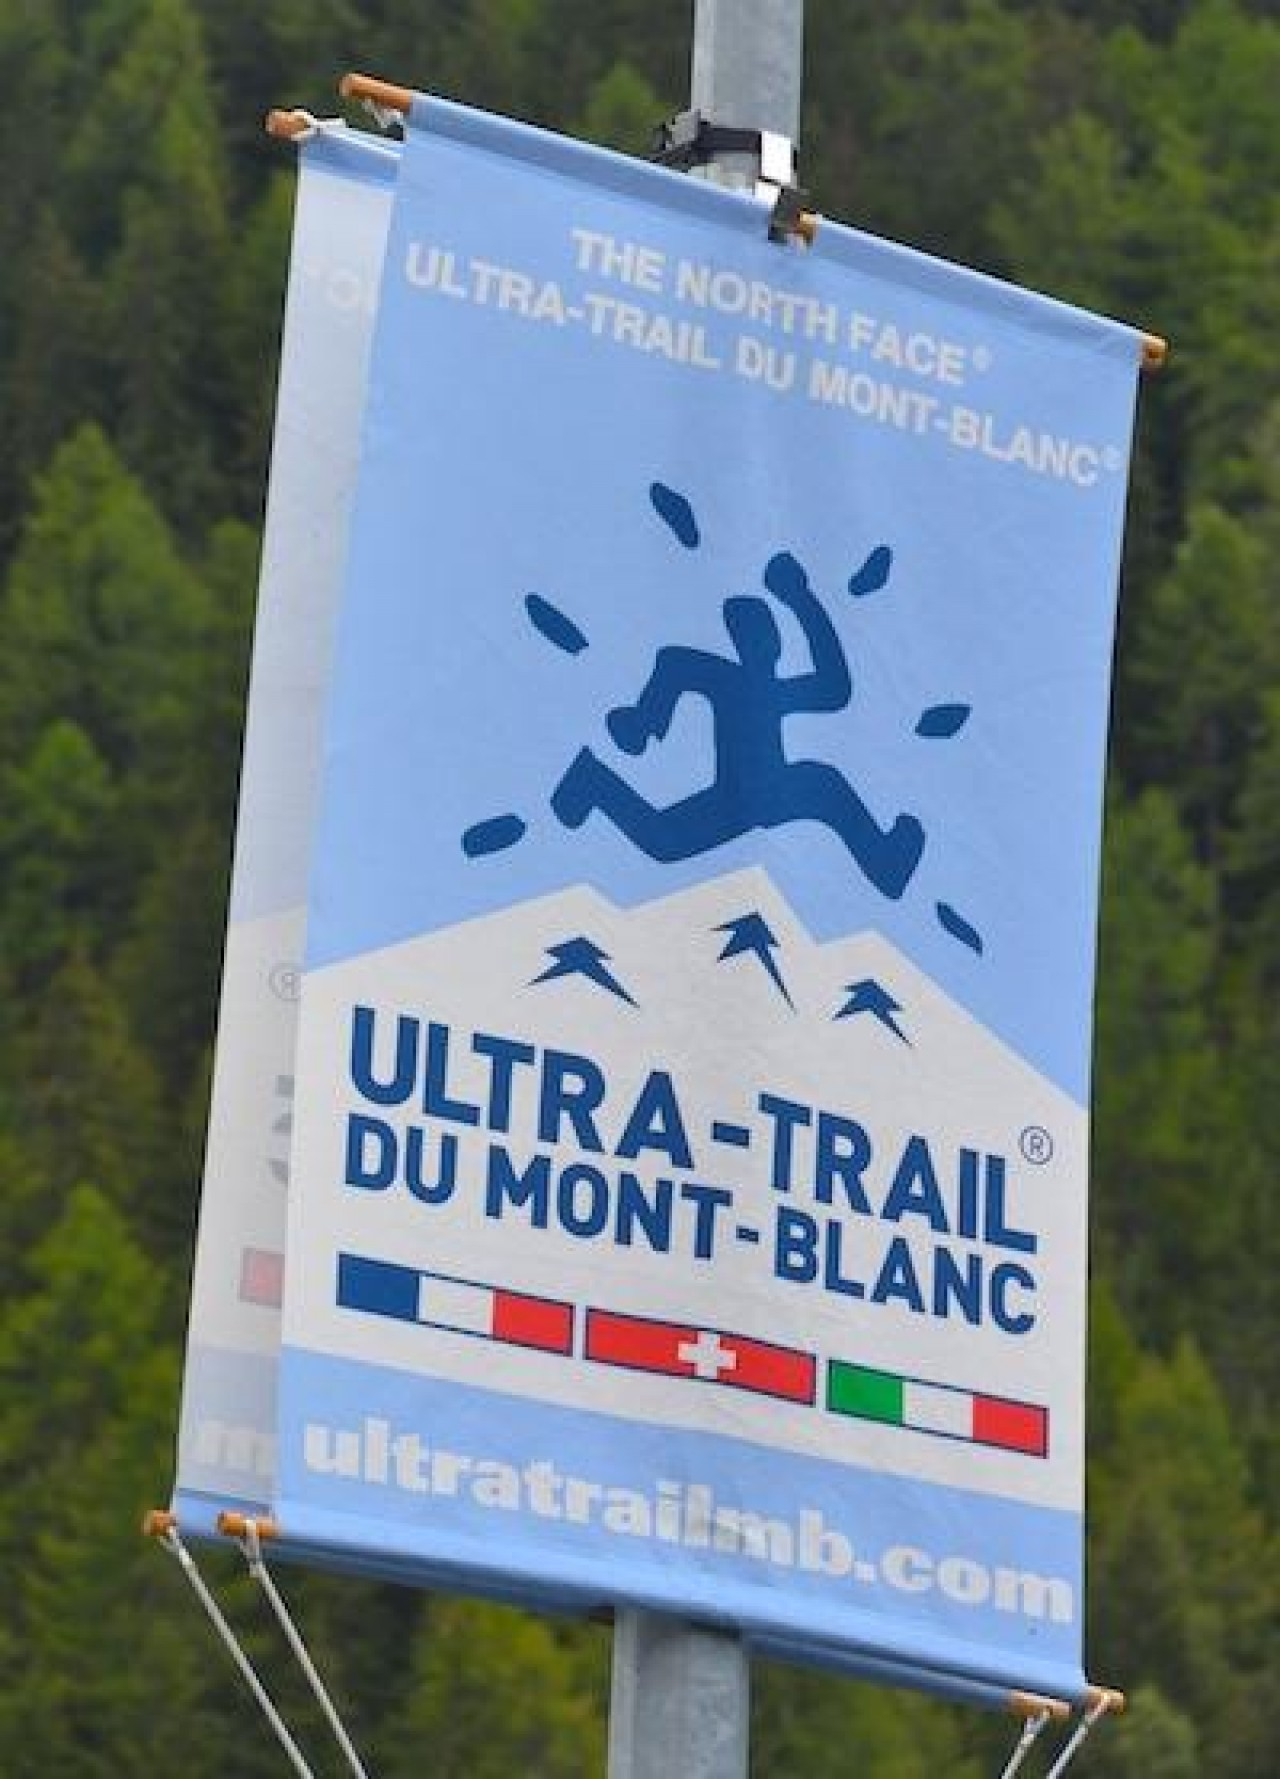 Ten days to UTMB!